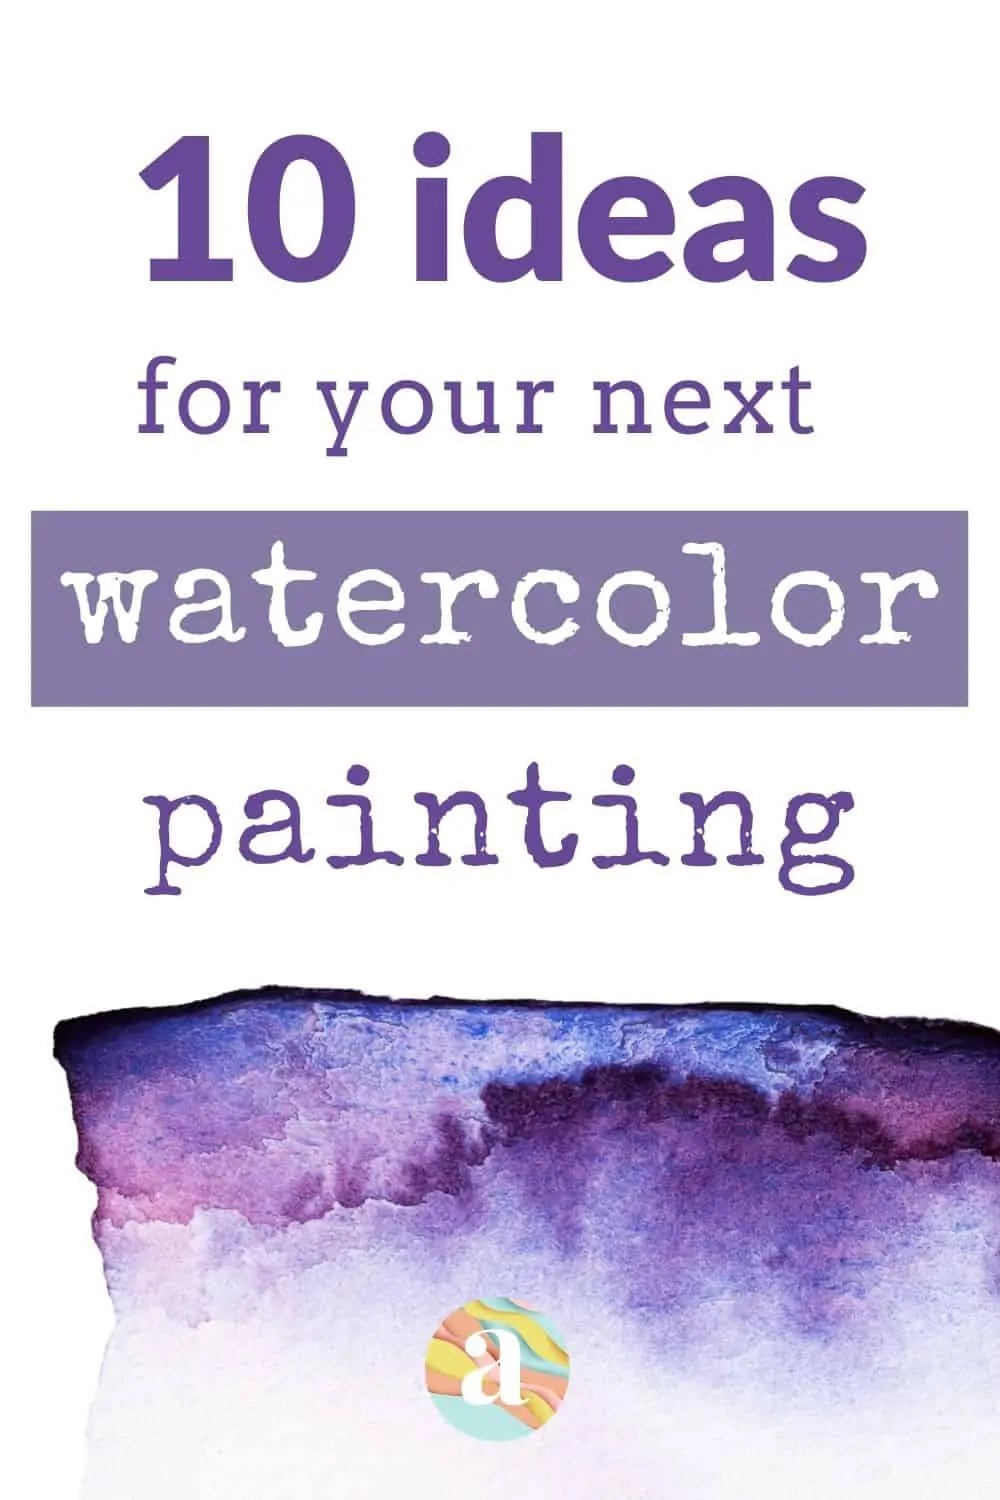 10 Ideas for Your Next Watercolor Painting 29